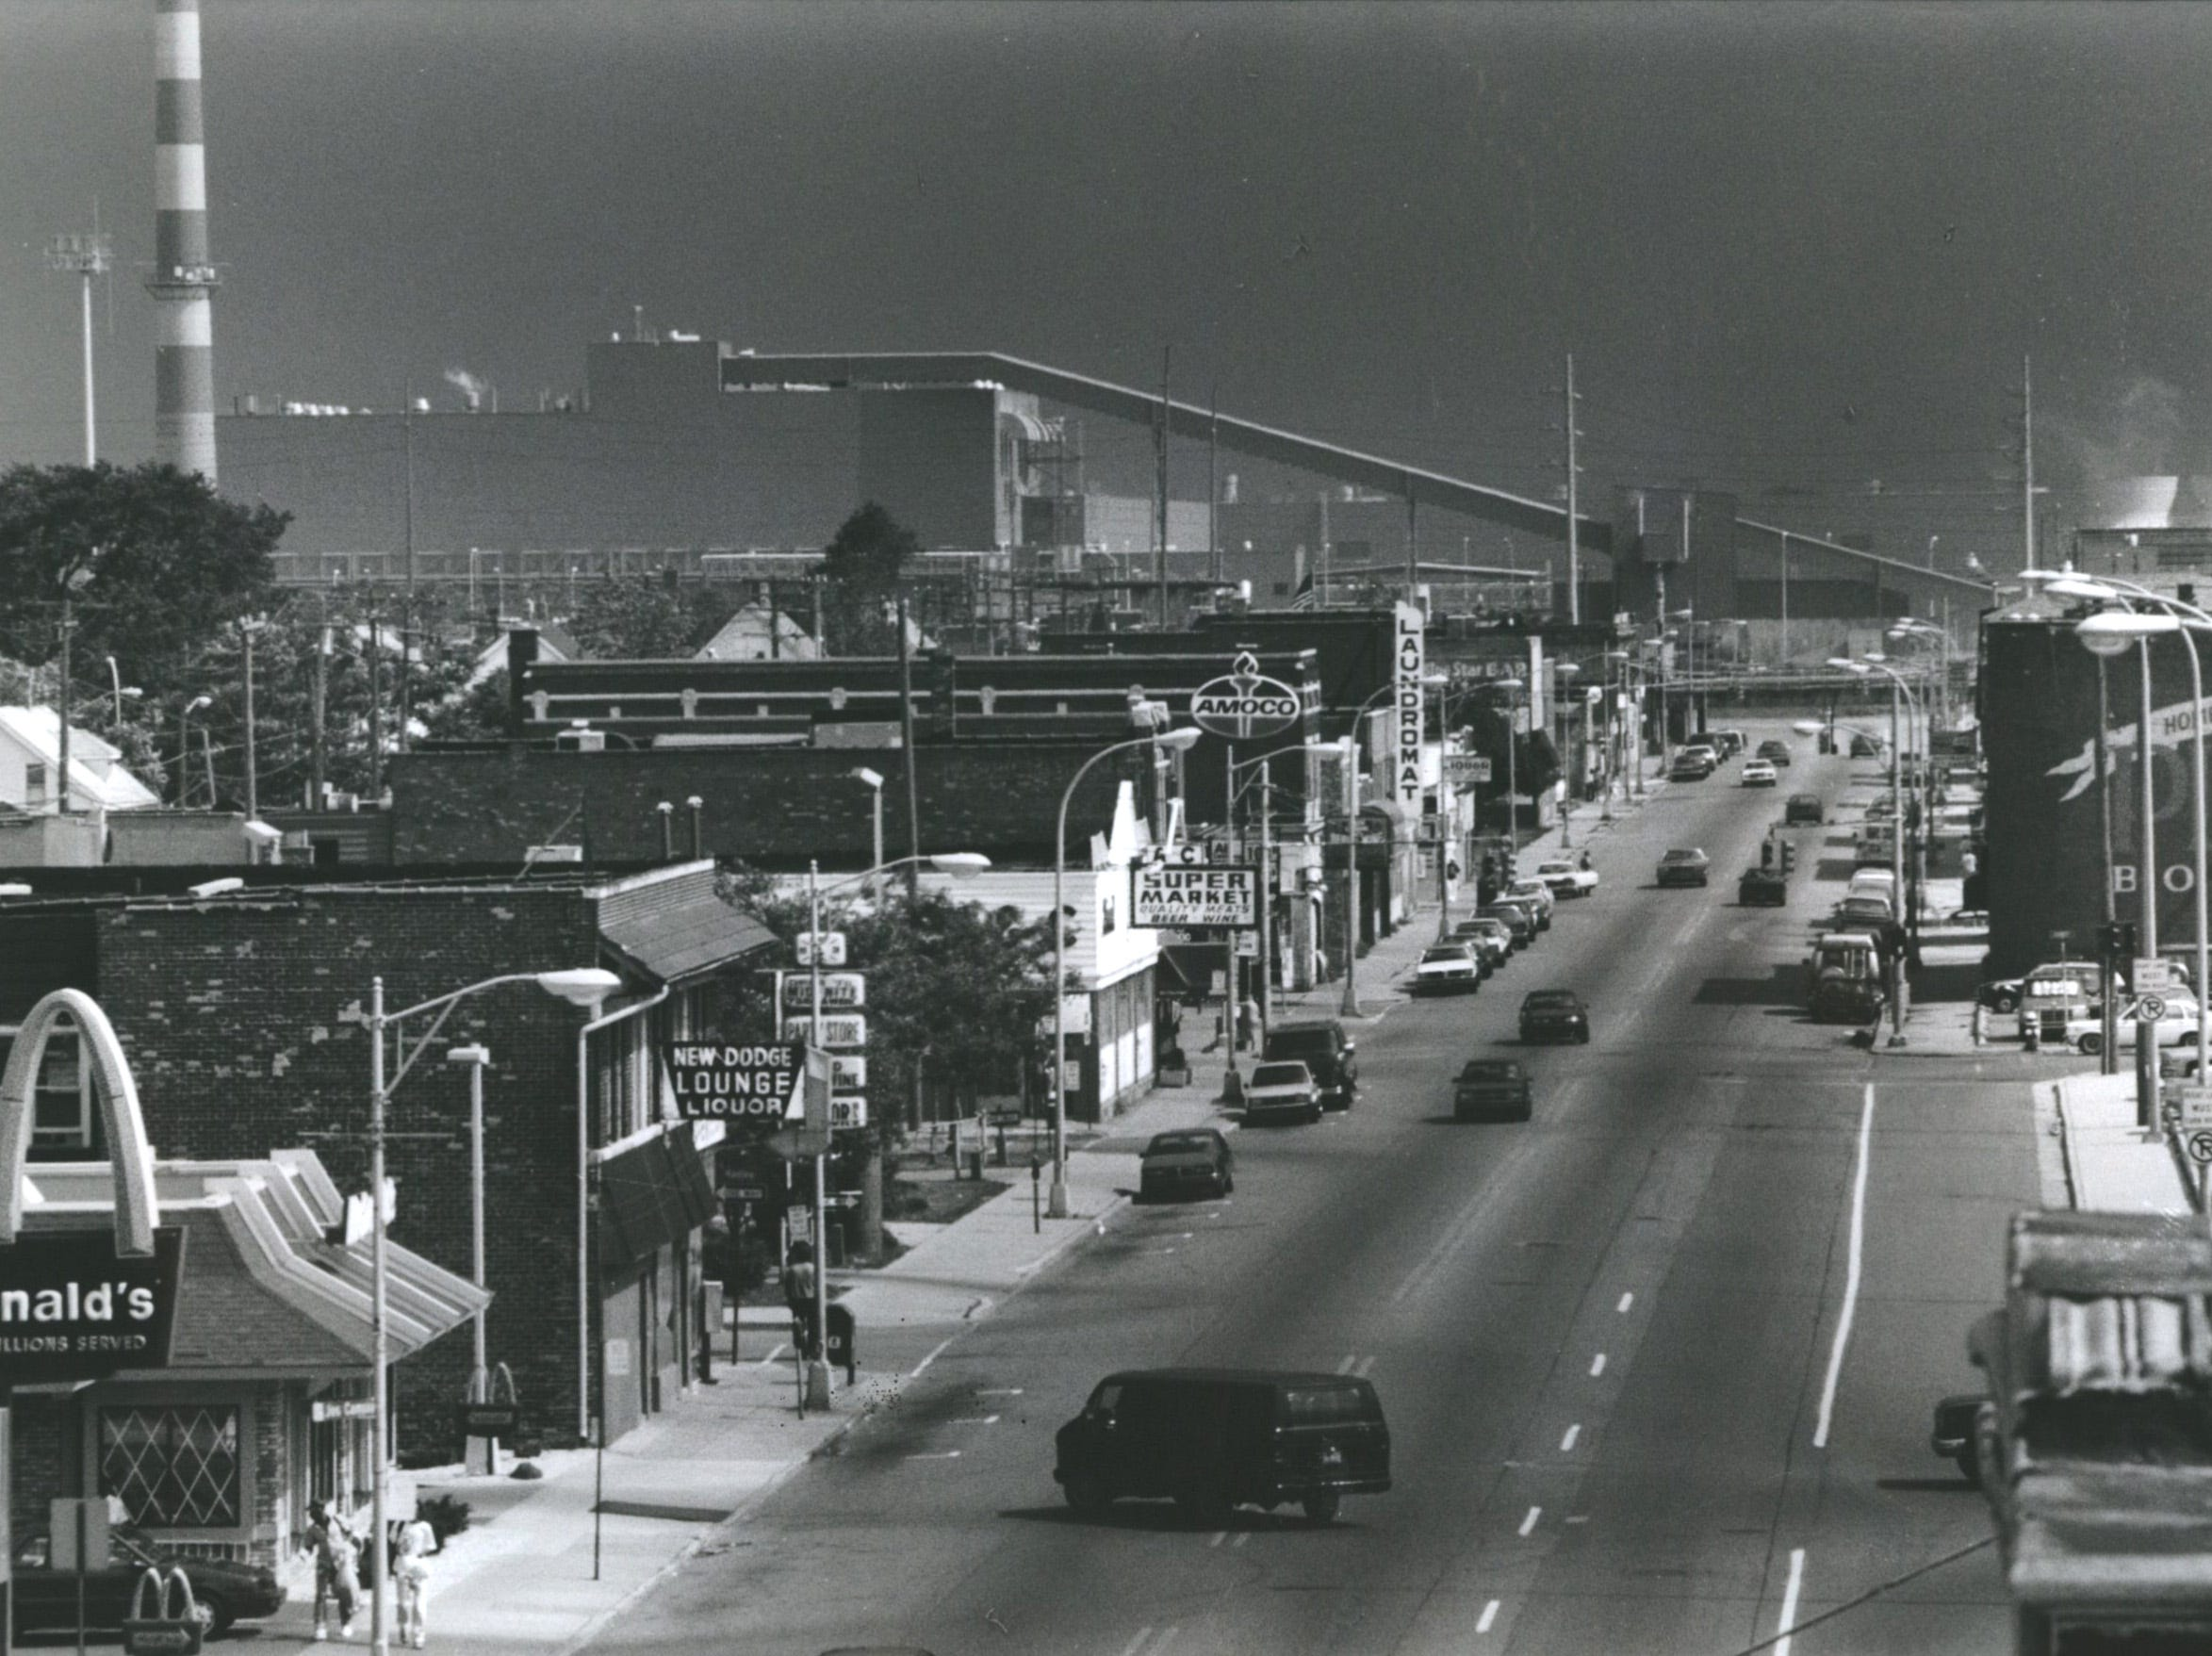 Hamtramck's main drag, Jos. Campau Avenue, looking south from Holbrook Street. General Motors' Poletown plant is on the horizon.